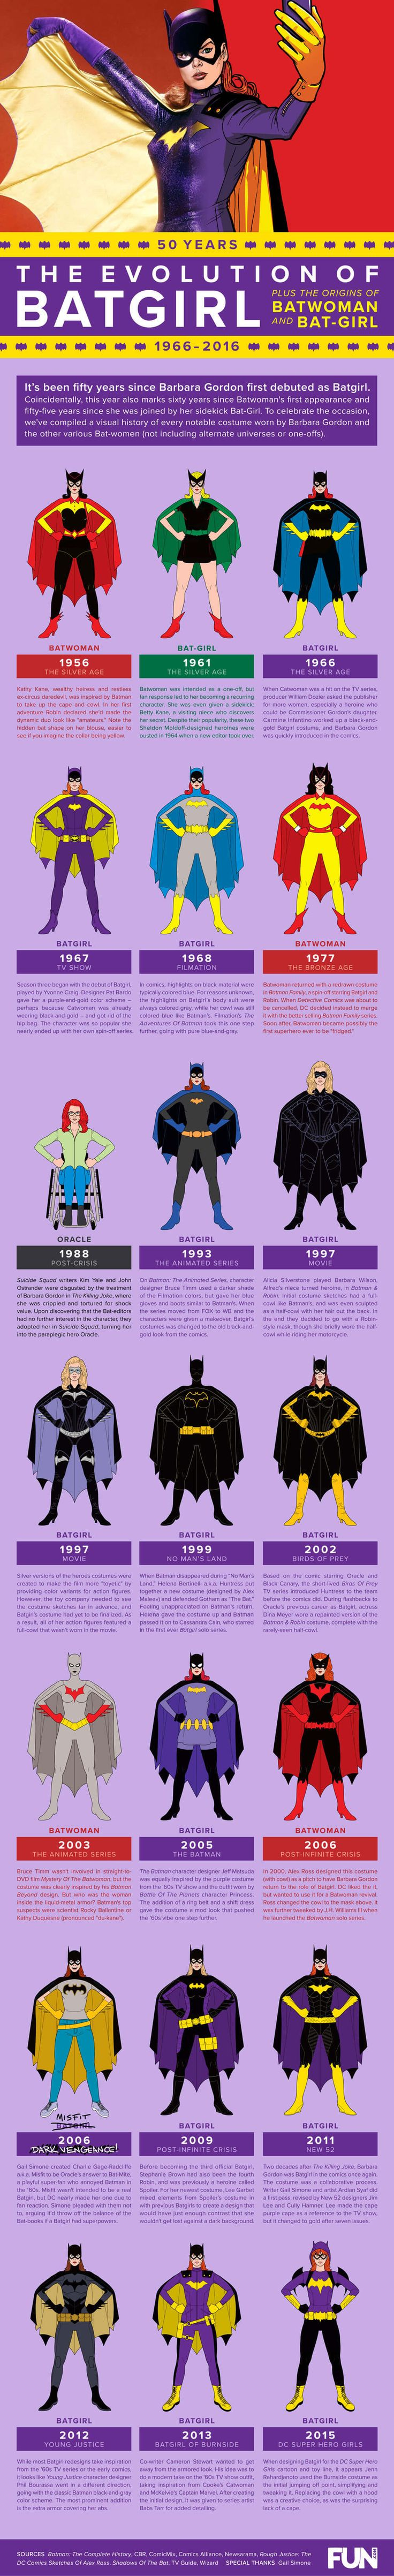 The Evolution of Batgirl [Infographic] - Fun Blog